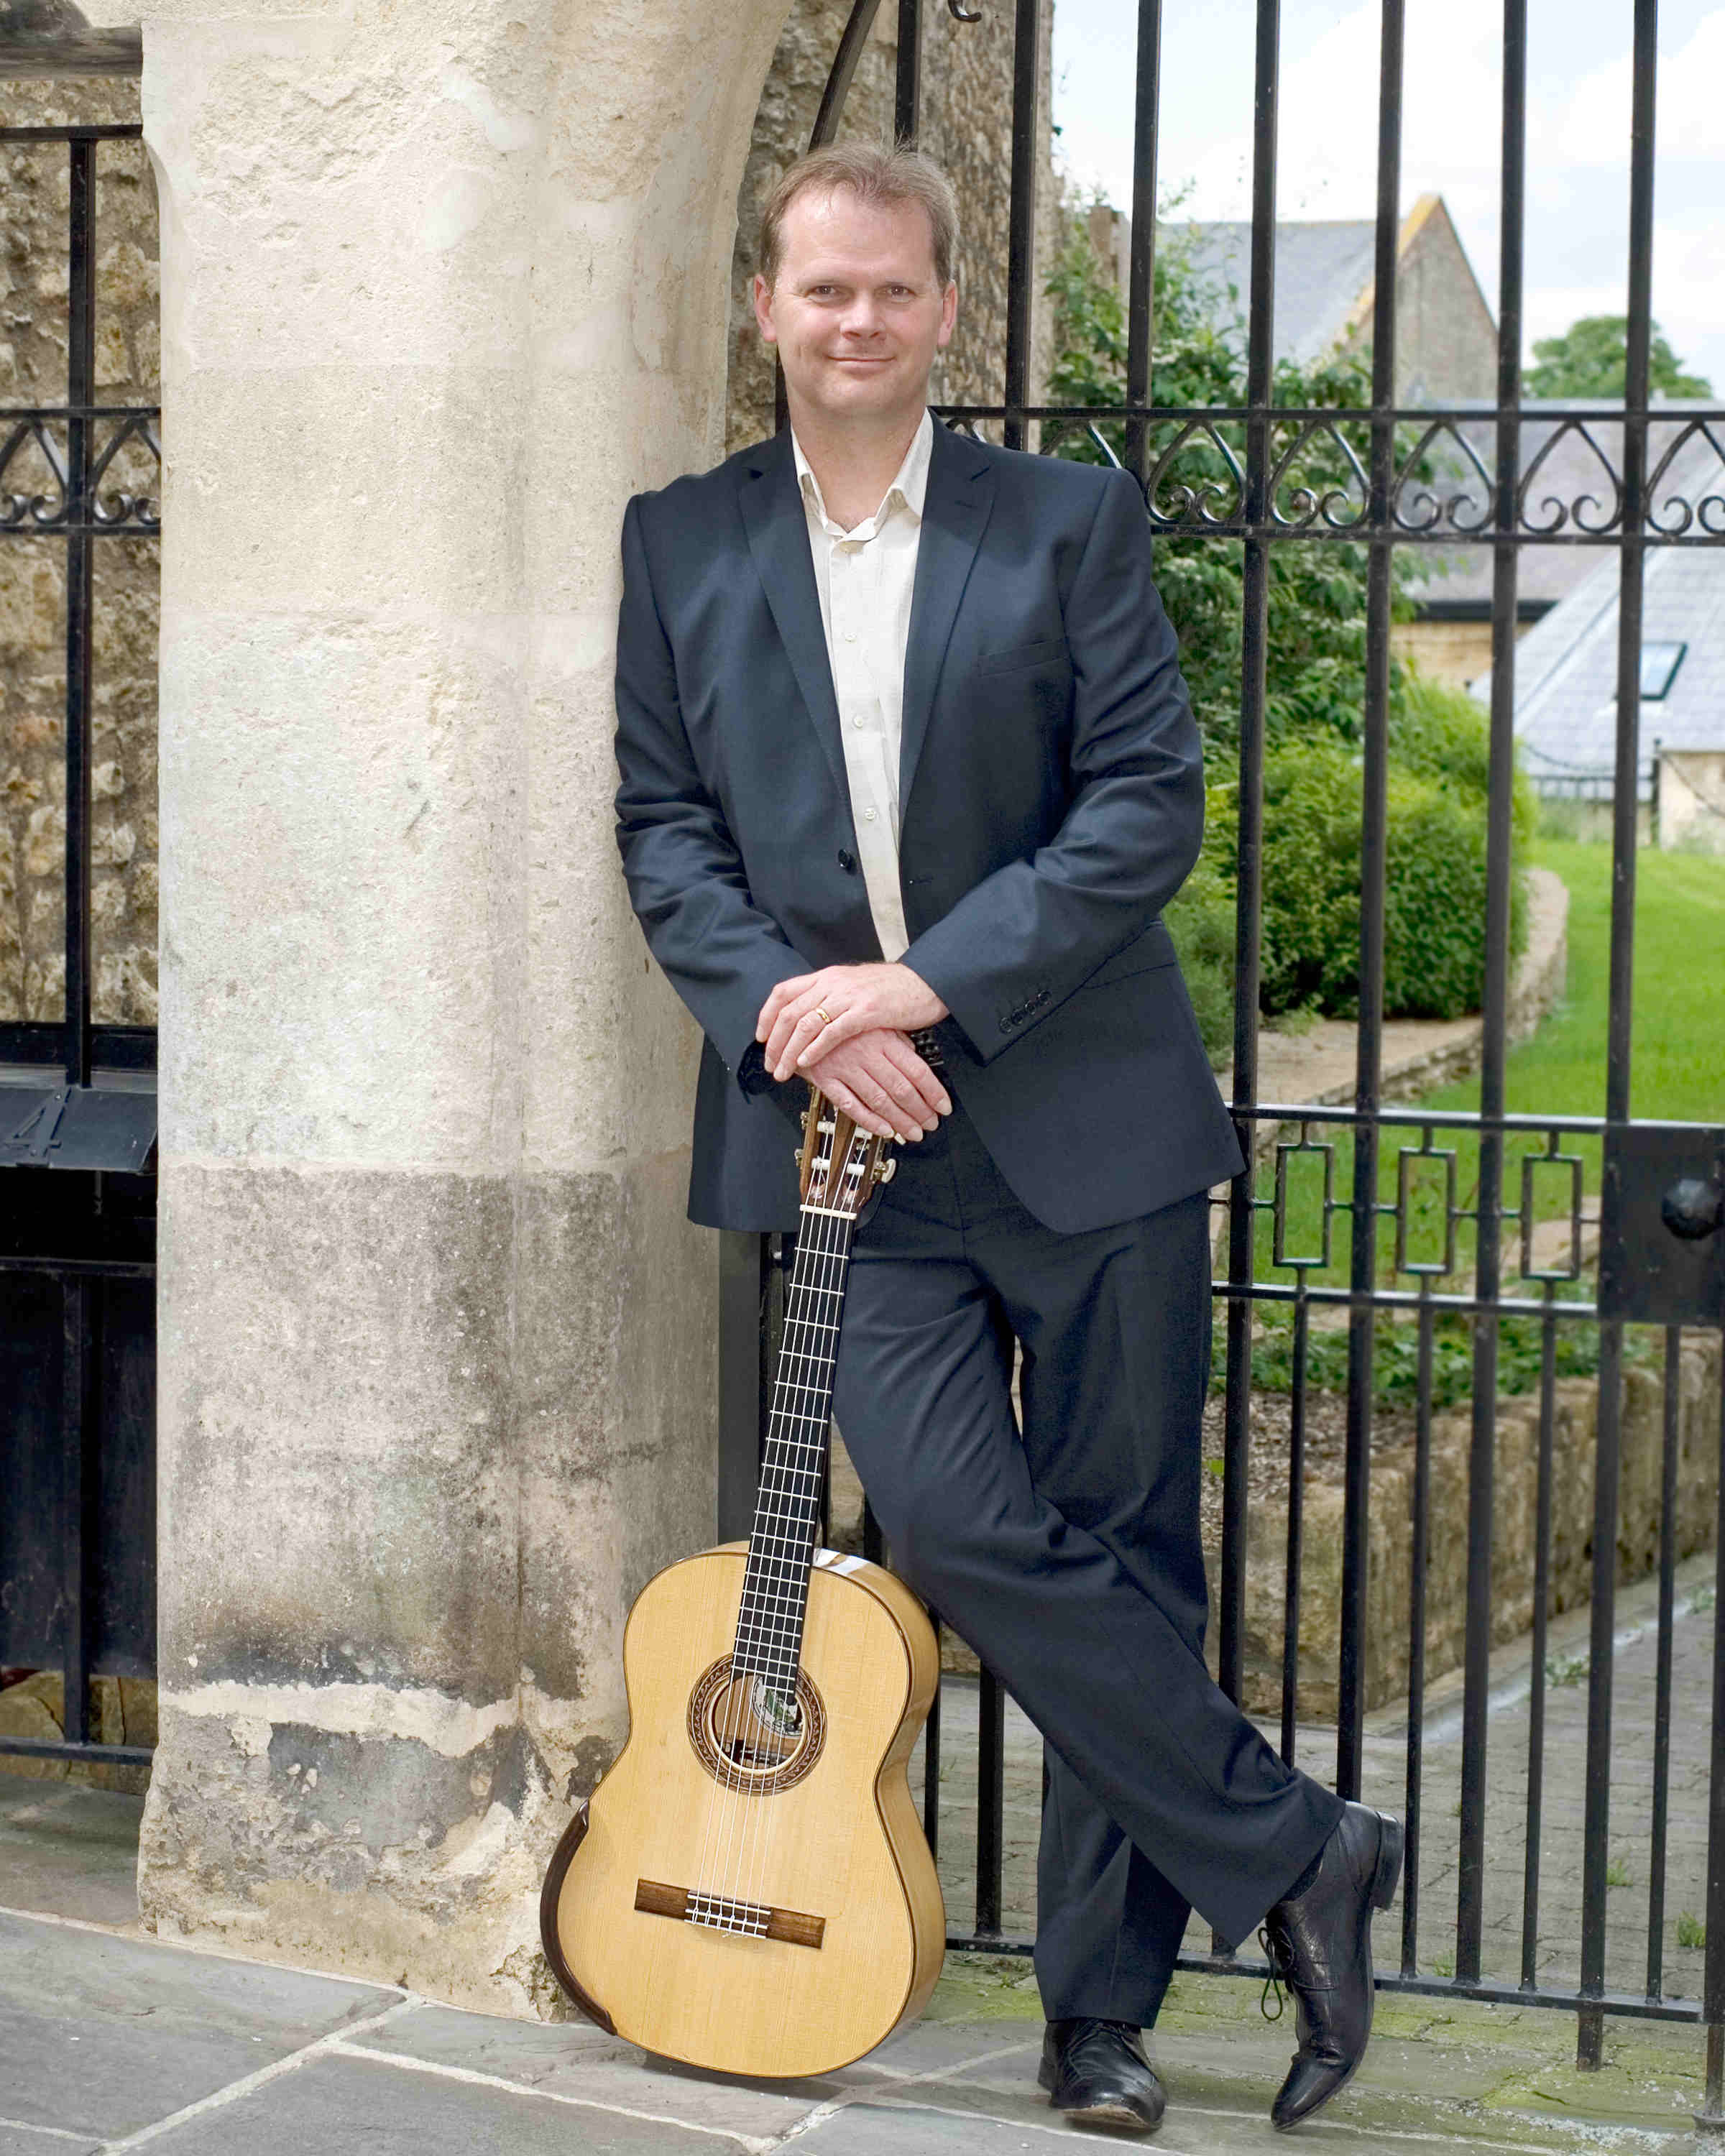 Jon with guitar at wedding venue